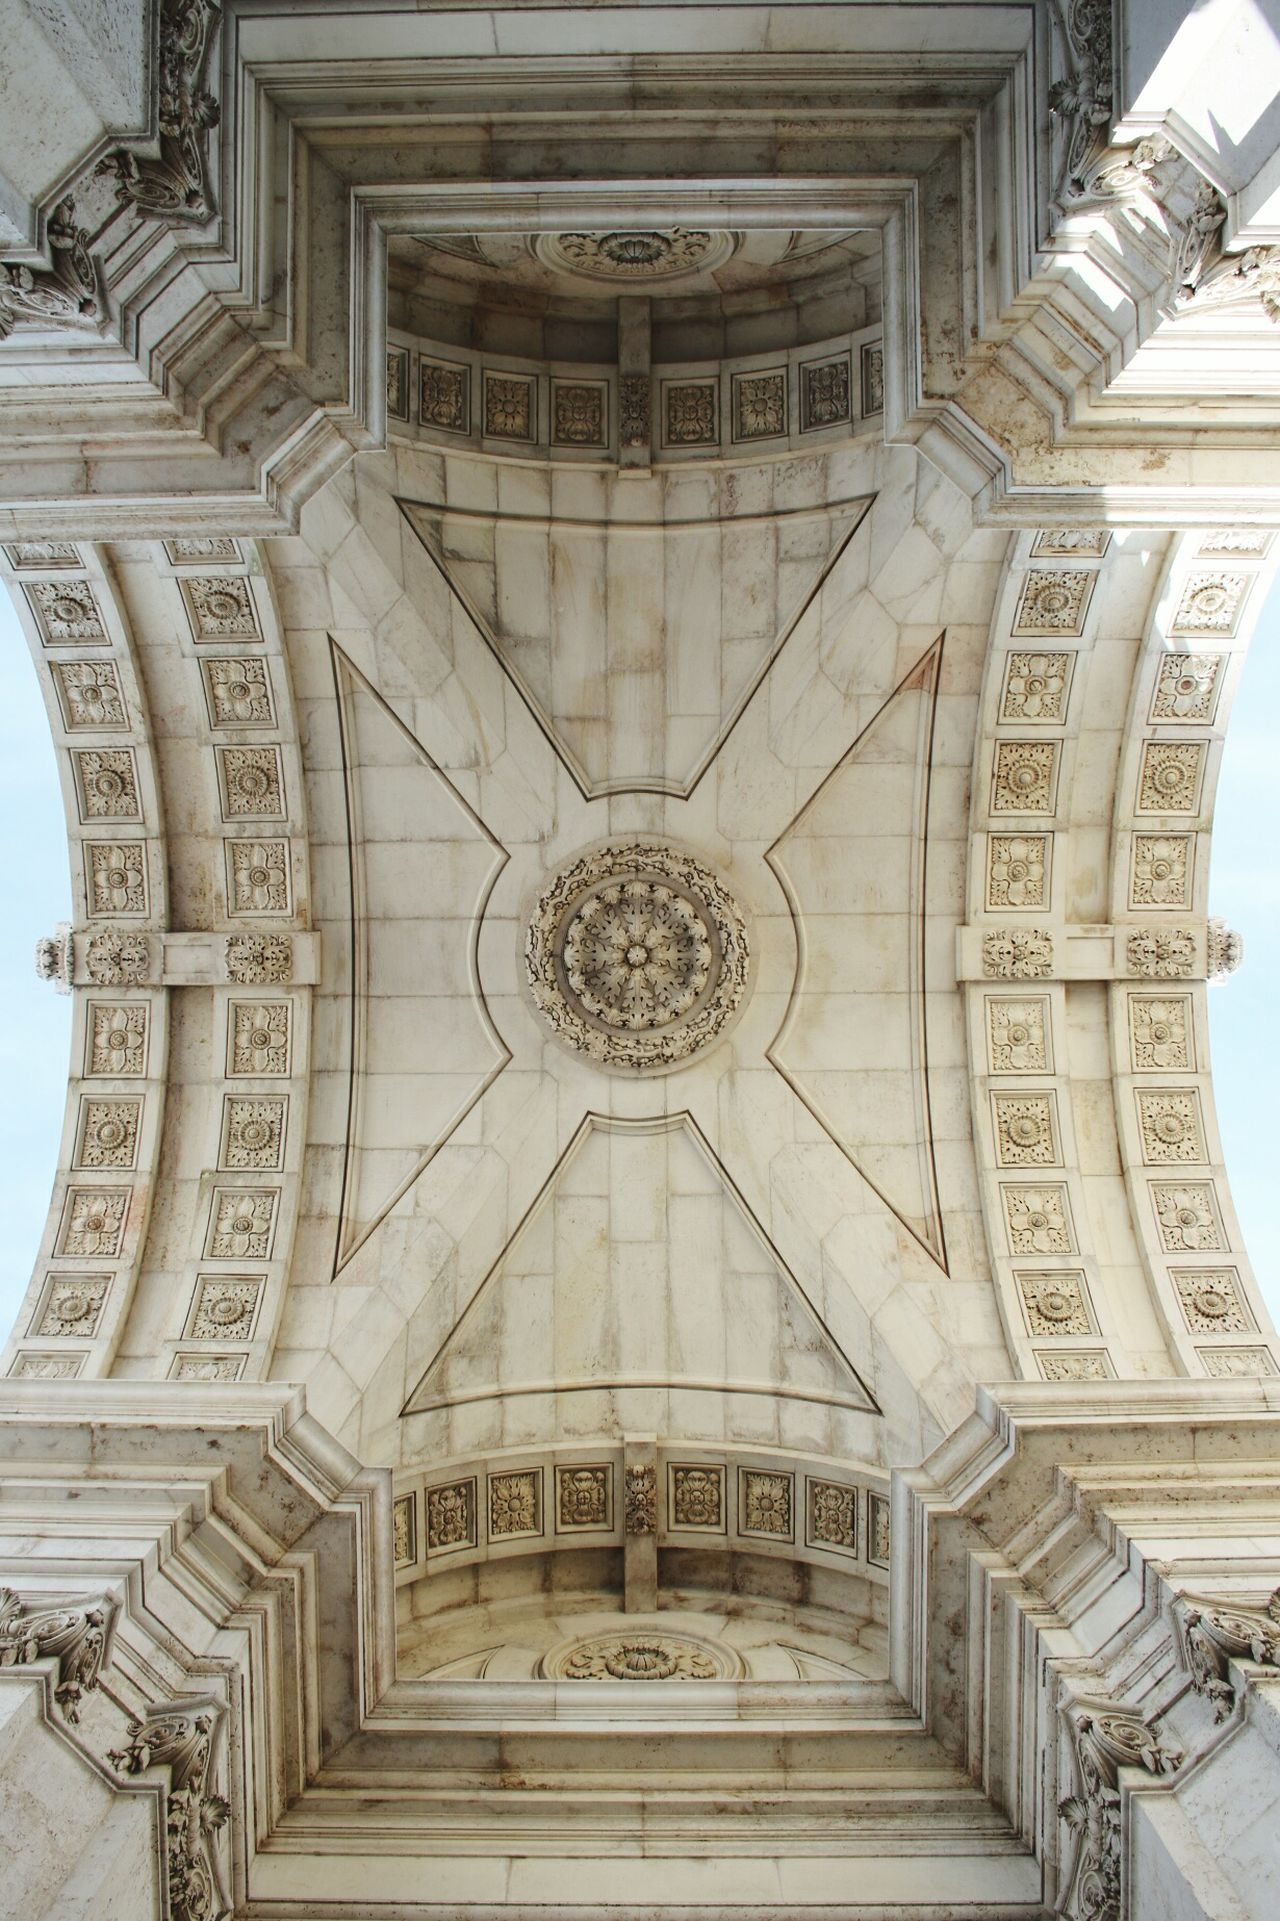 Architecture Travel Destinations History Symmetry Tourism Built Structure City No People Indoors  Arch Day Sky Arco Plaça Do Comercio Lisboa Arco Di Trionfo Rua Augusta Arch Rua Augusta Terreiro Do Paço Tago River TagusLisbon, Portugal TerreiroDoPaço